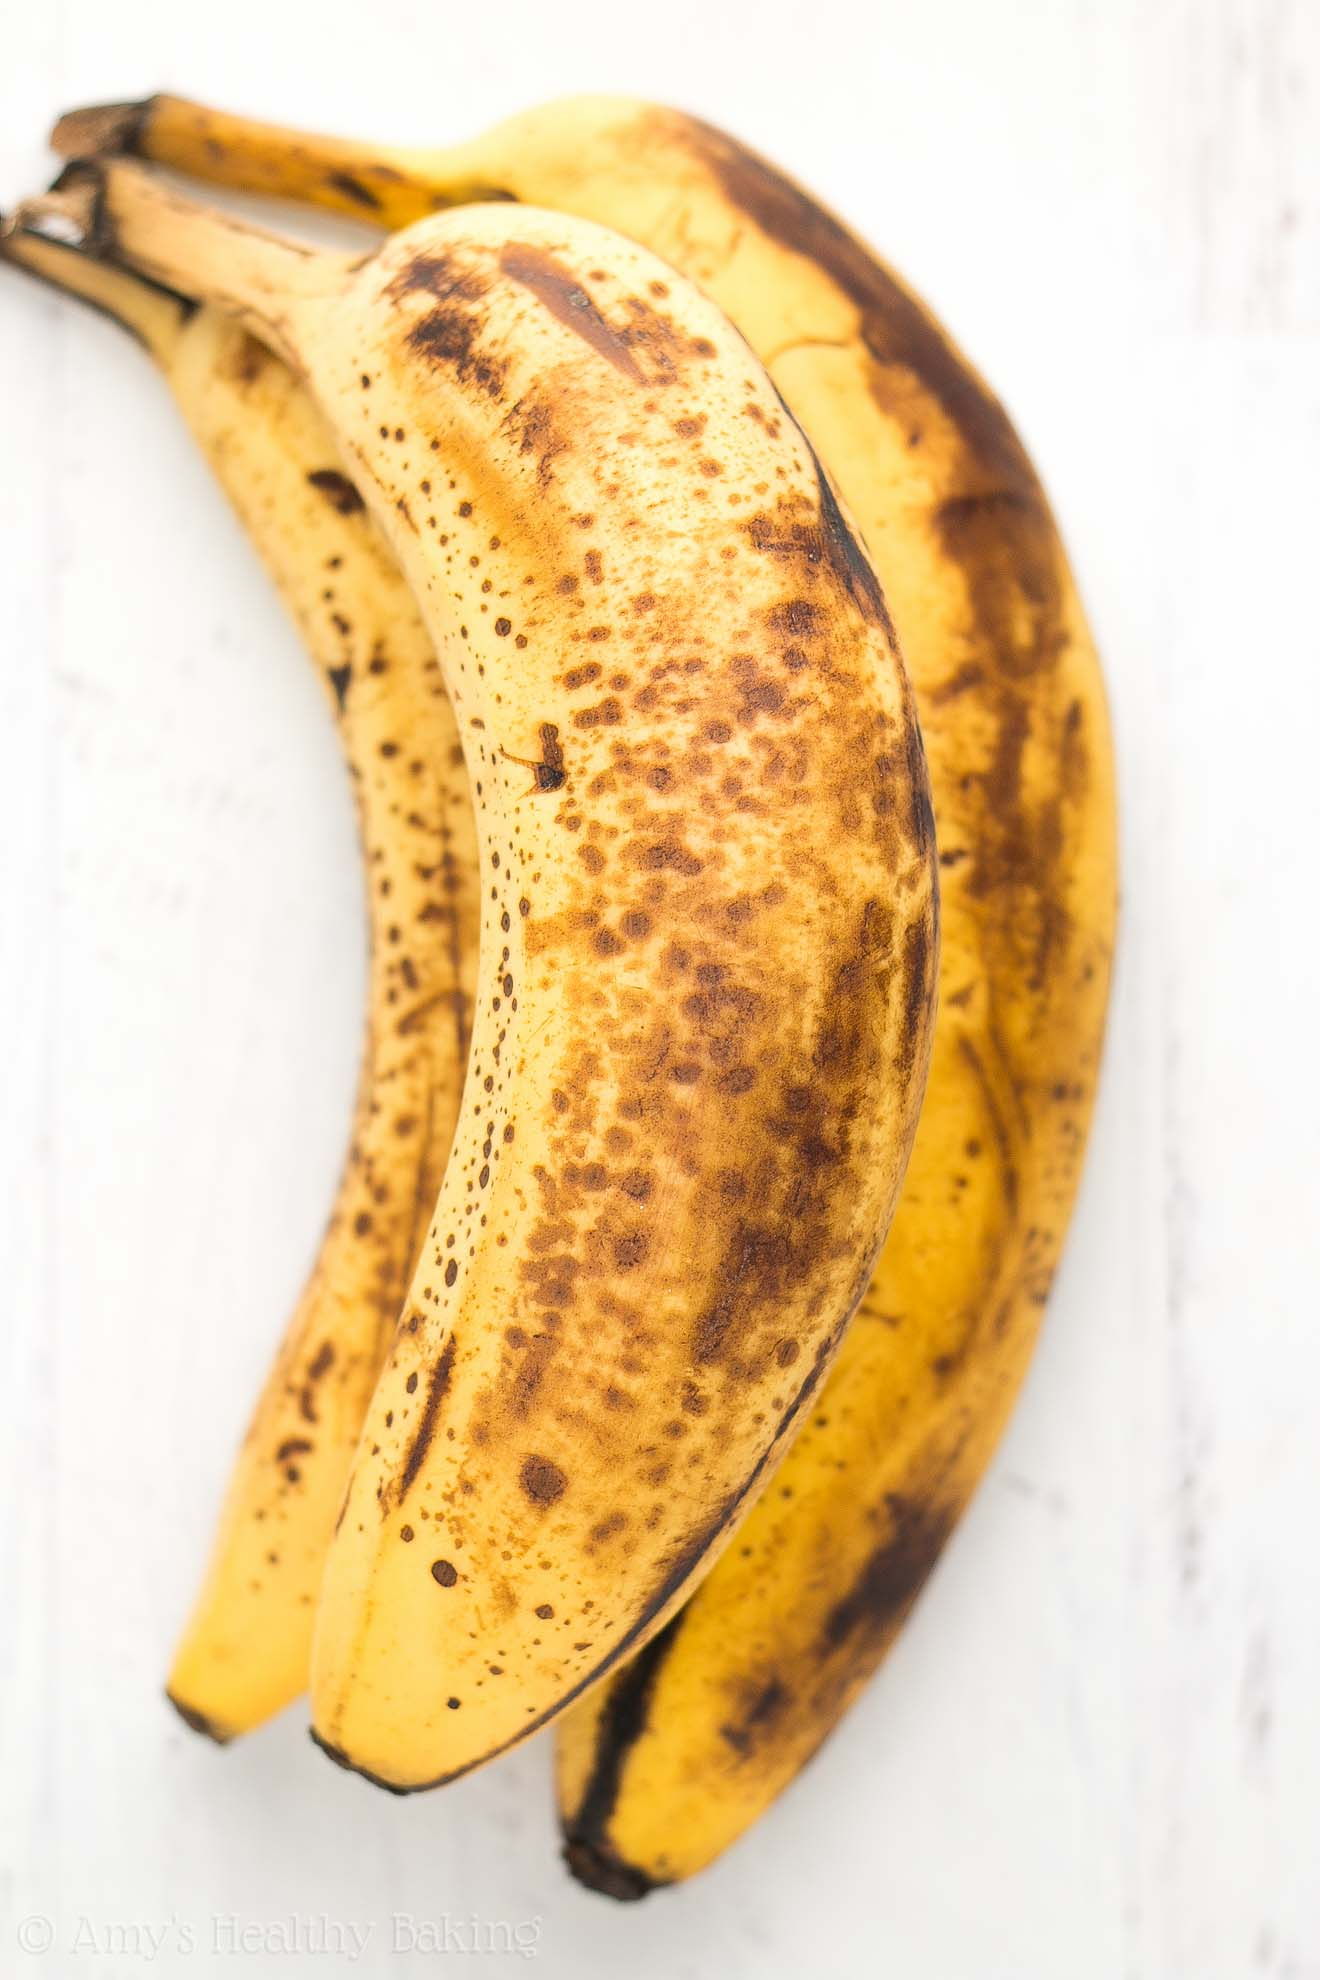 Ripe bananas that are perfect for baking